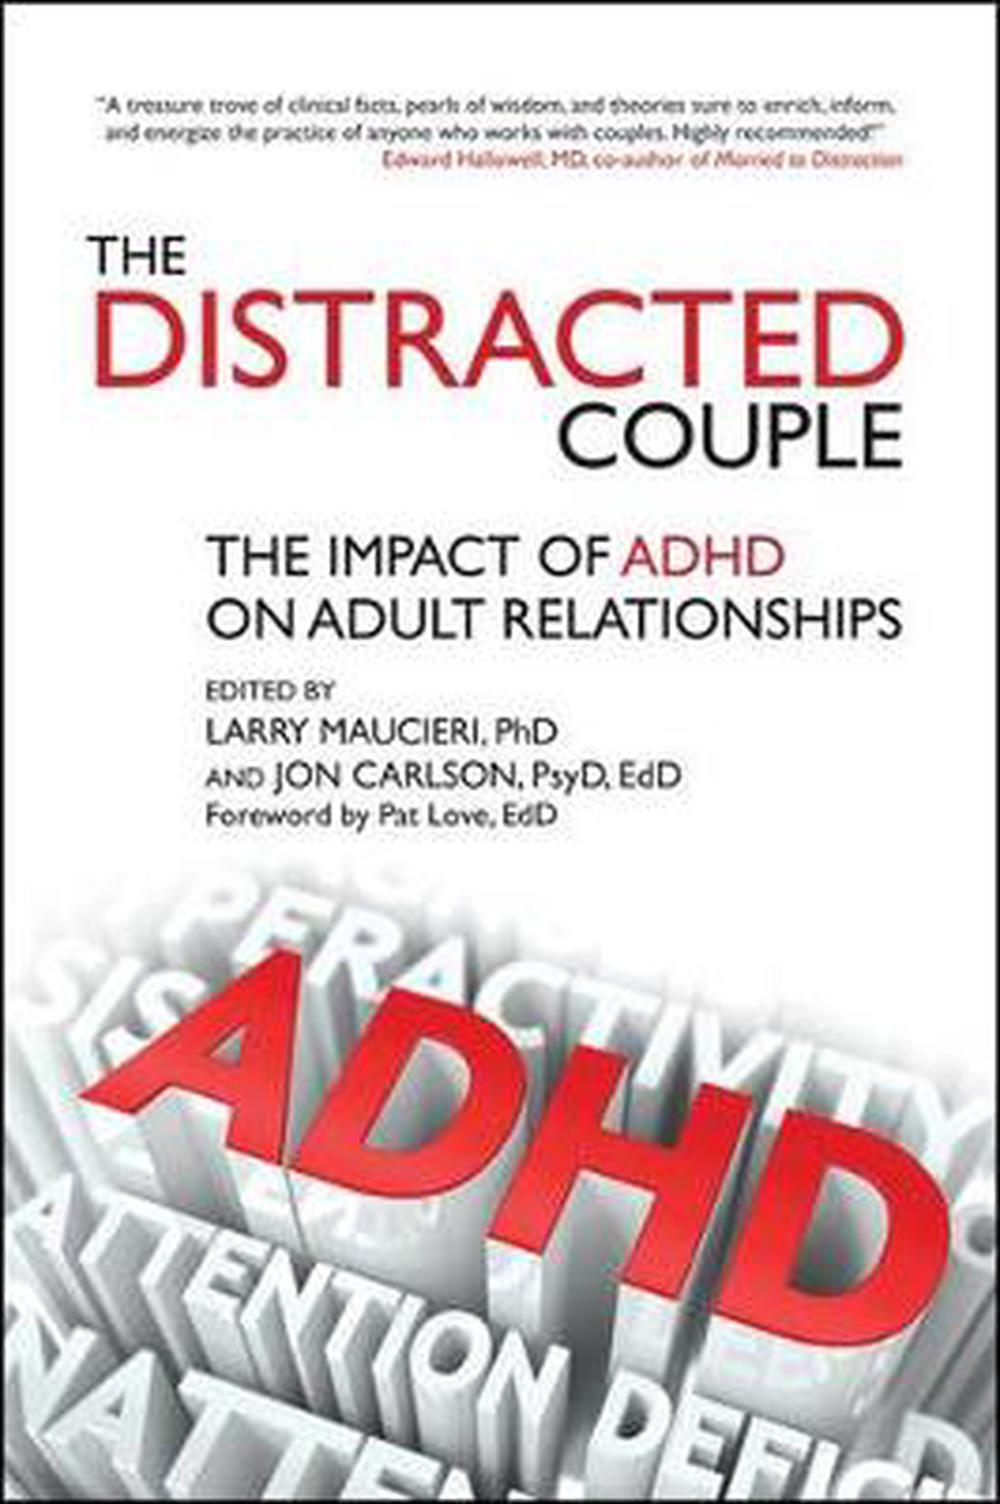 The Distracted Couple by Larry Maucieri, ISBN: 9781845908775